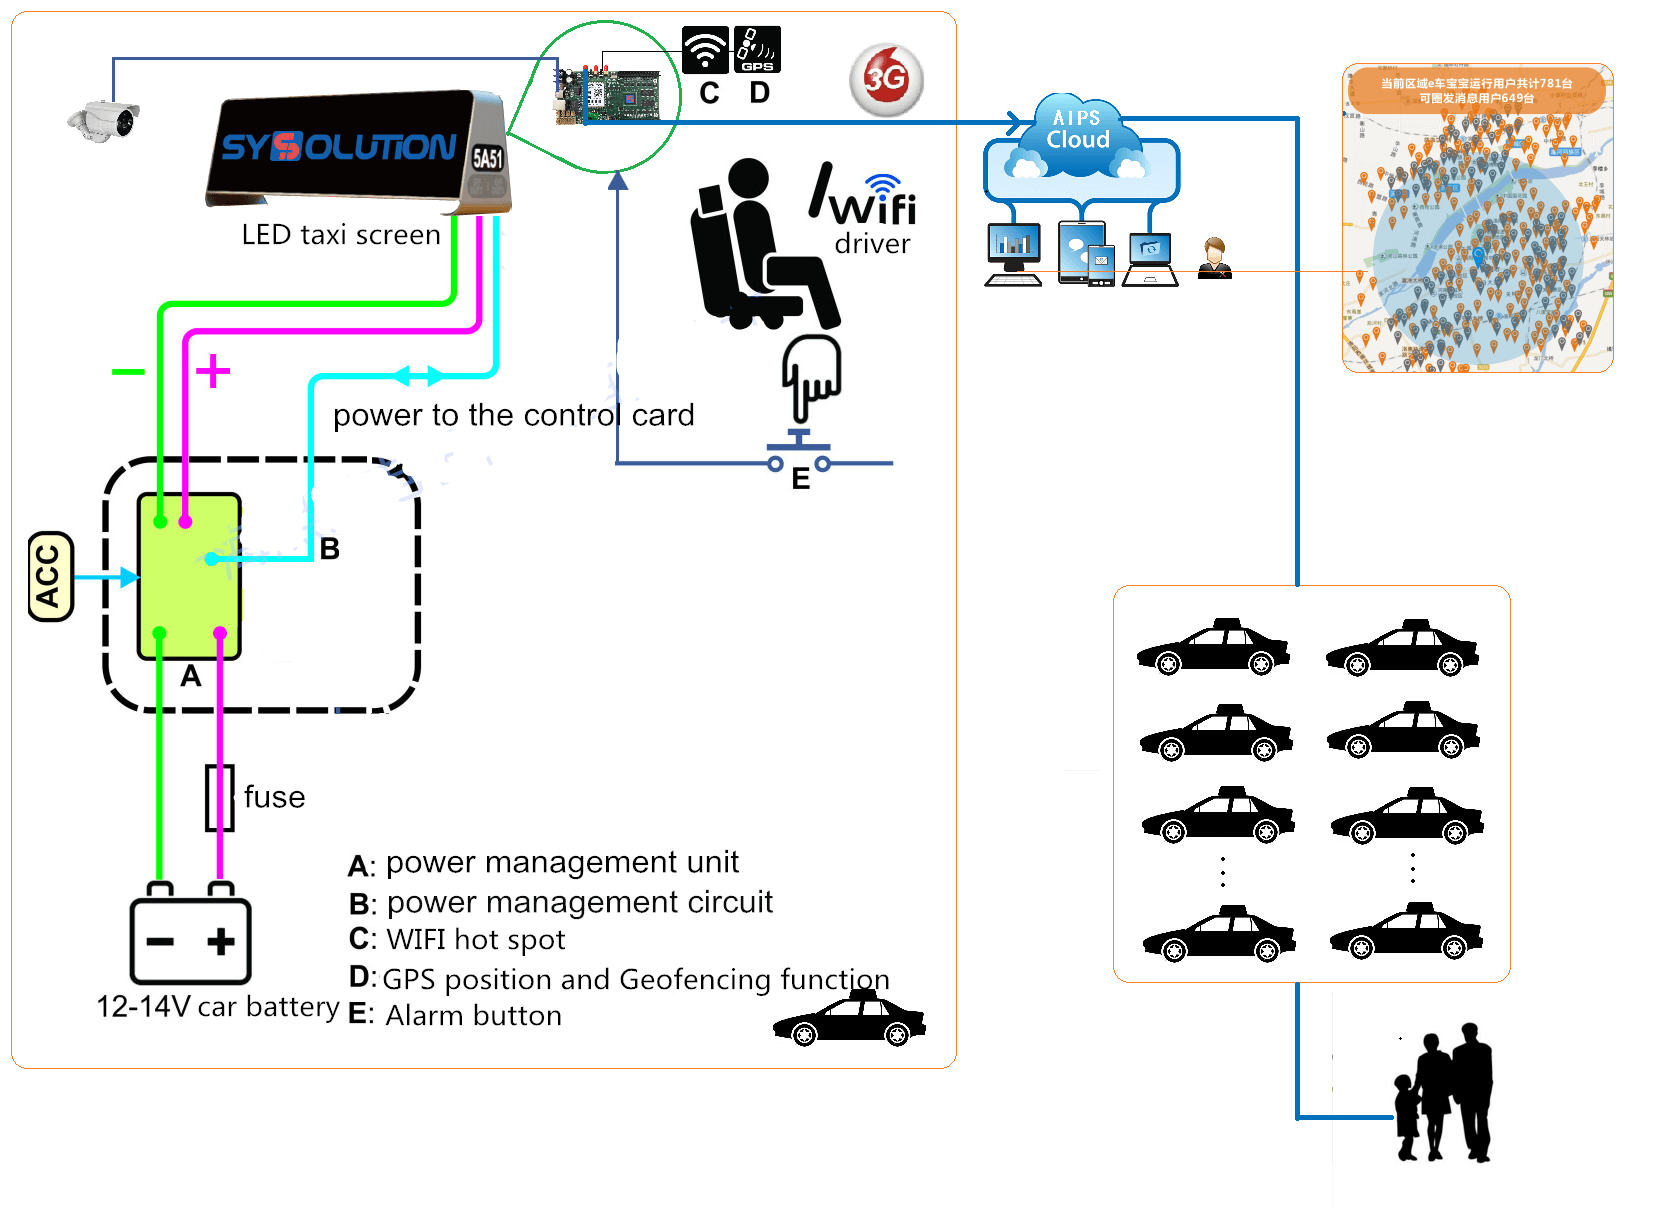 taxi screen cloud platform